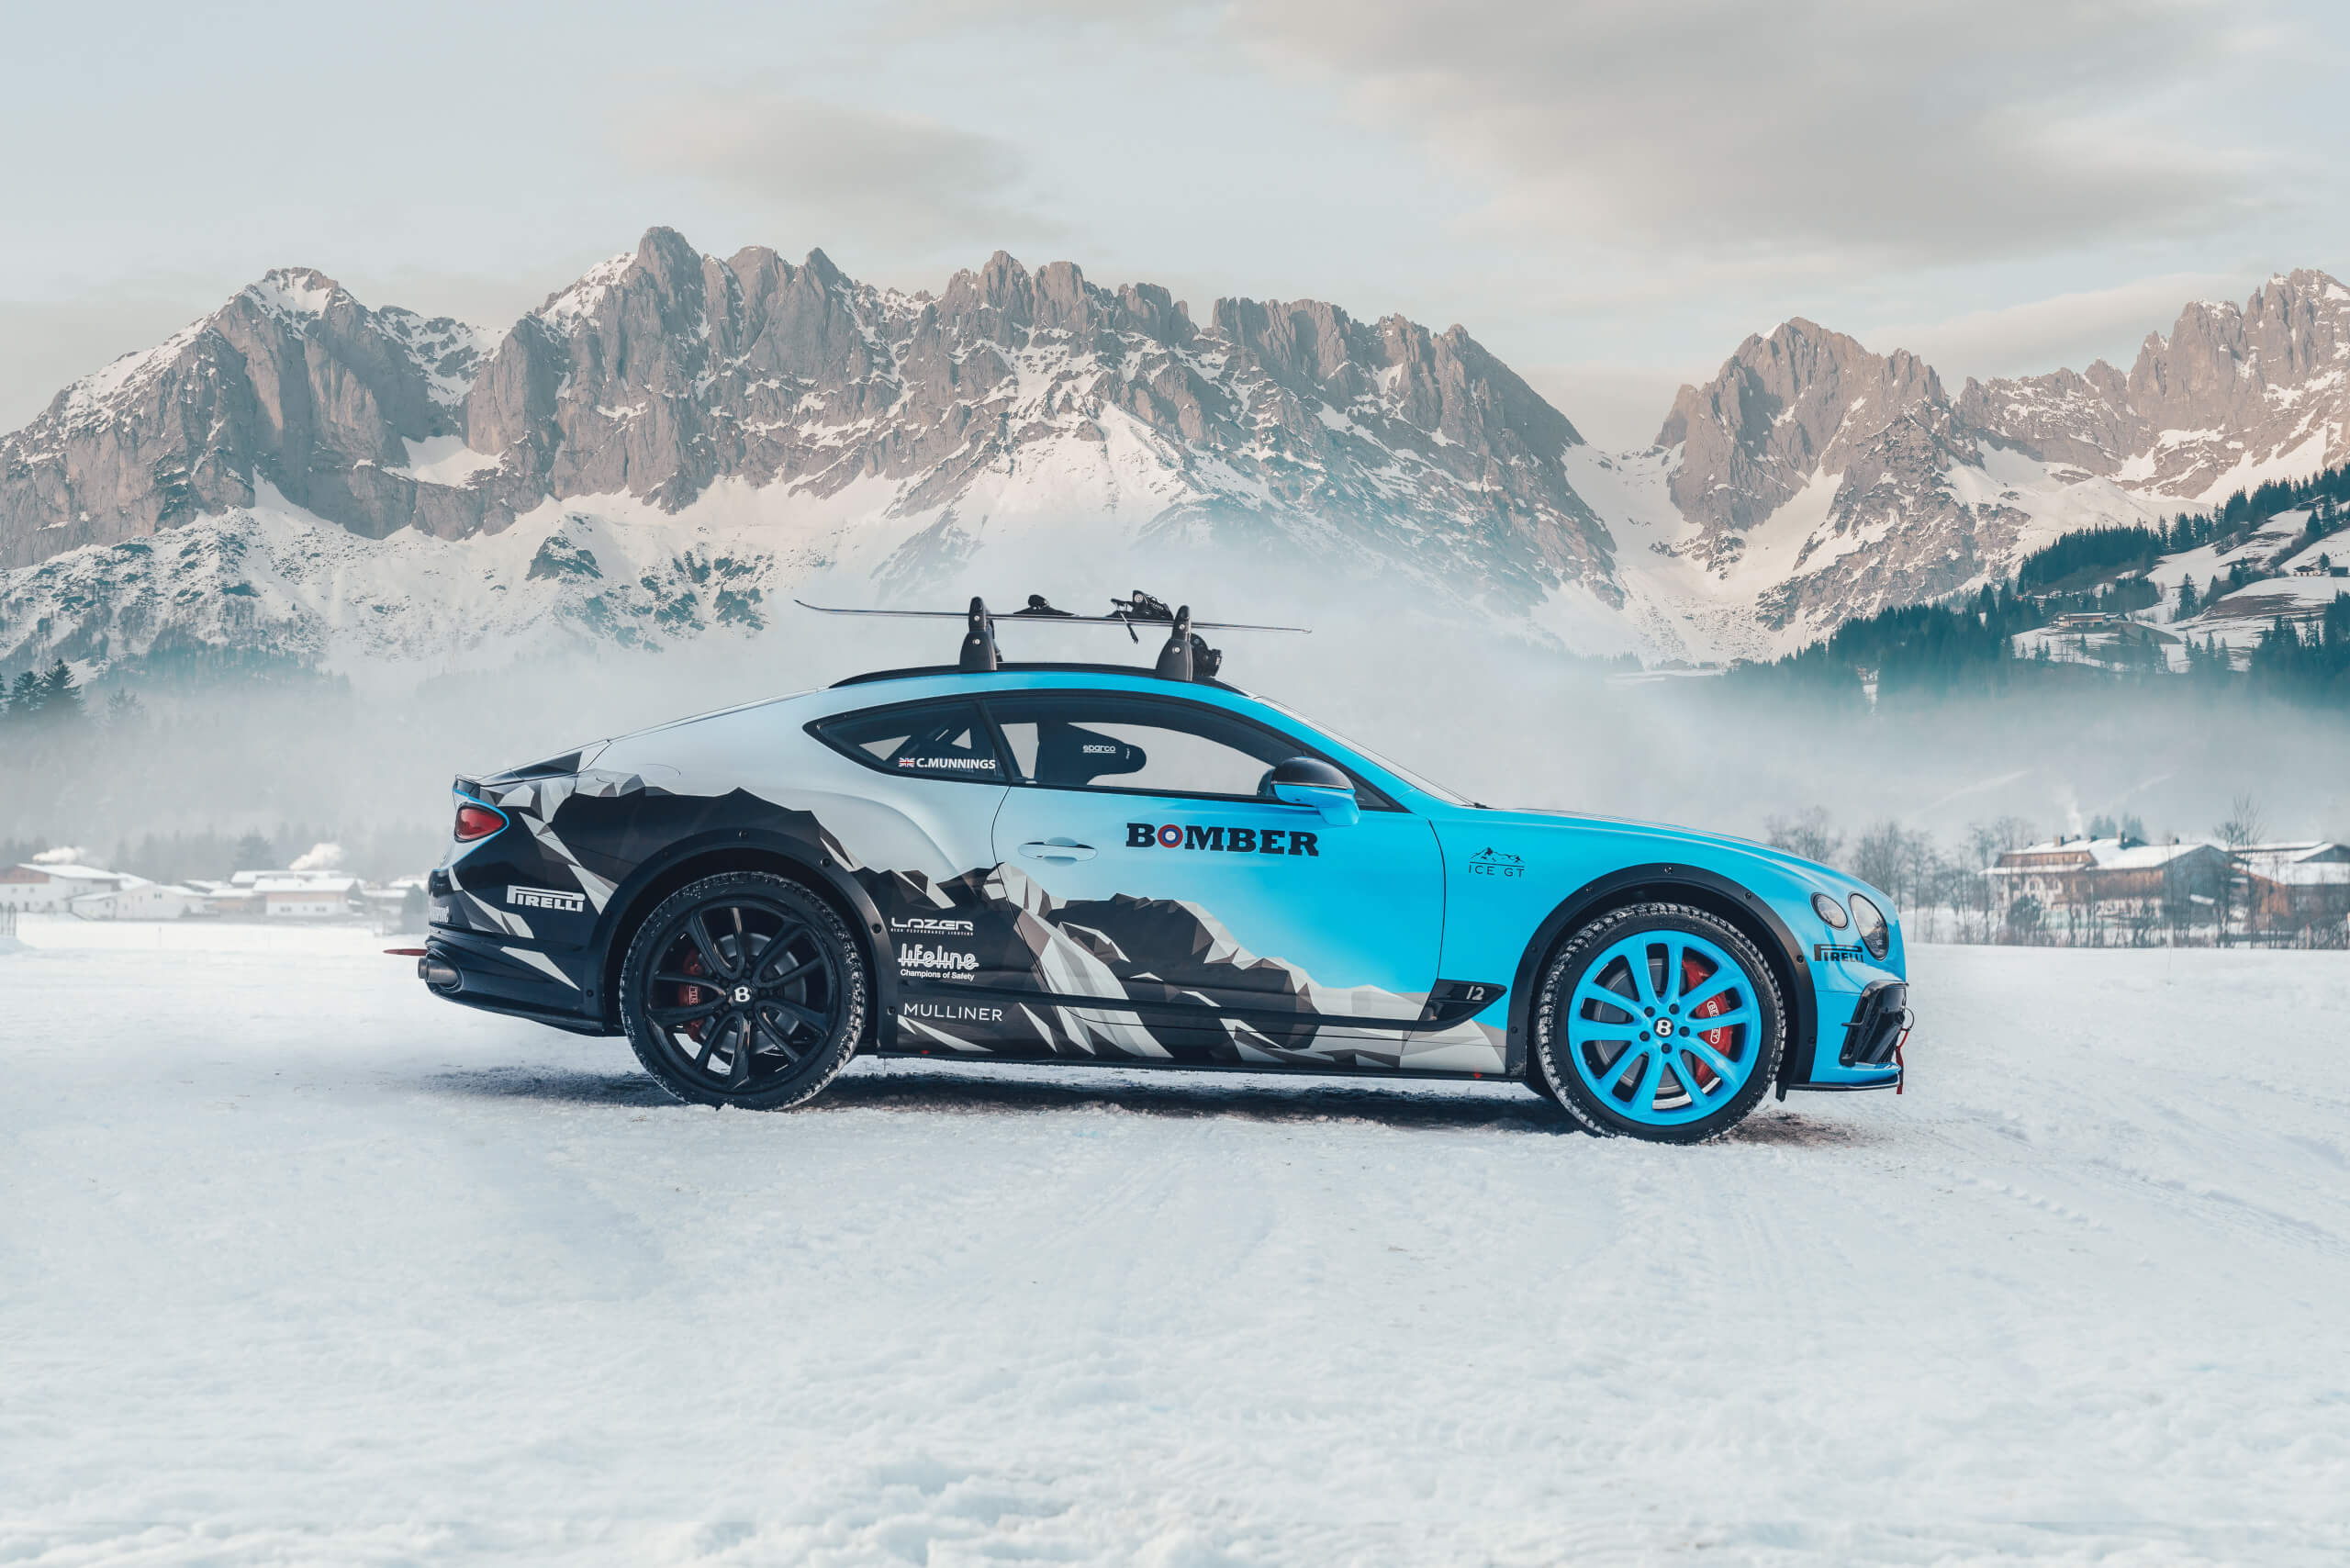 Bentley's Continental GT Ice GT will compete in the 2020 GP Ice Race in Zell am See, Austria.